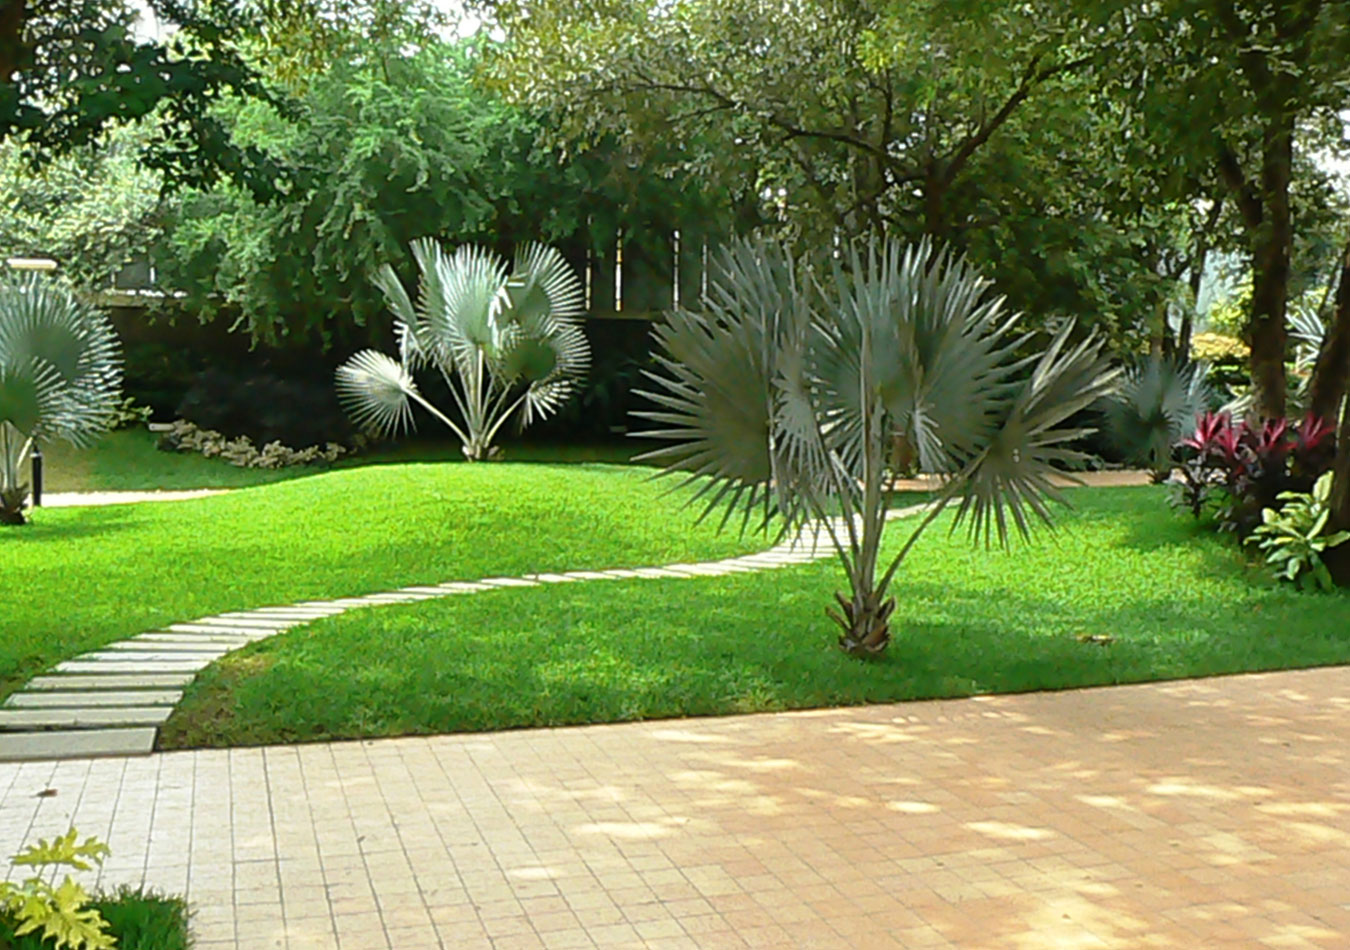 landscape architecture projects landscape garden design projects